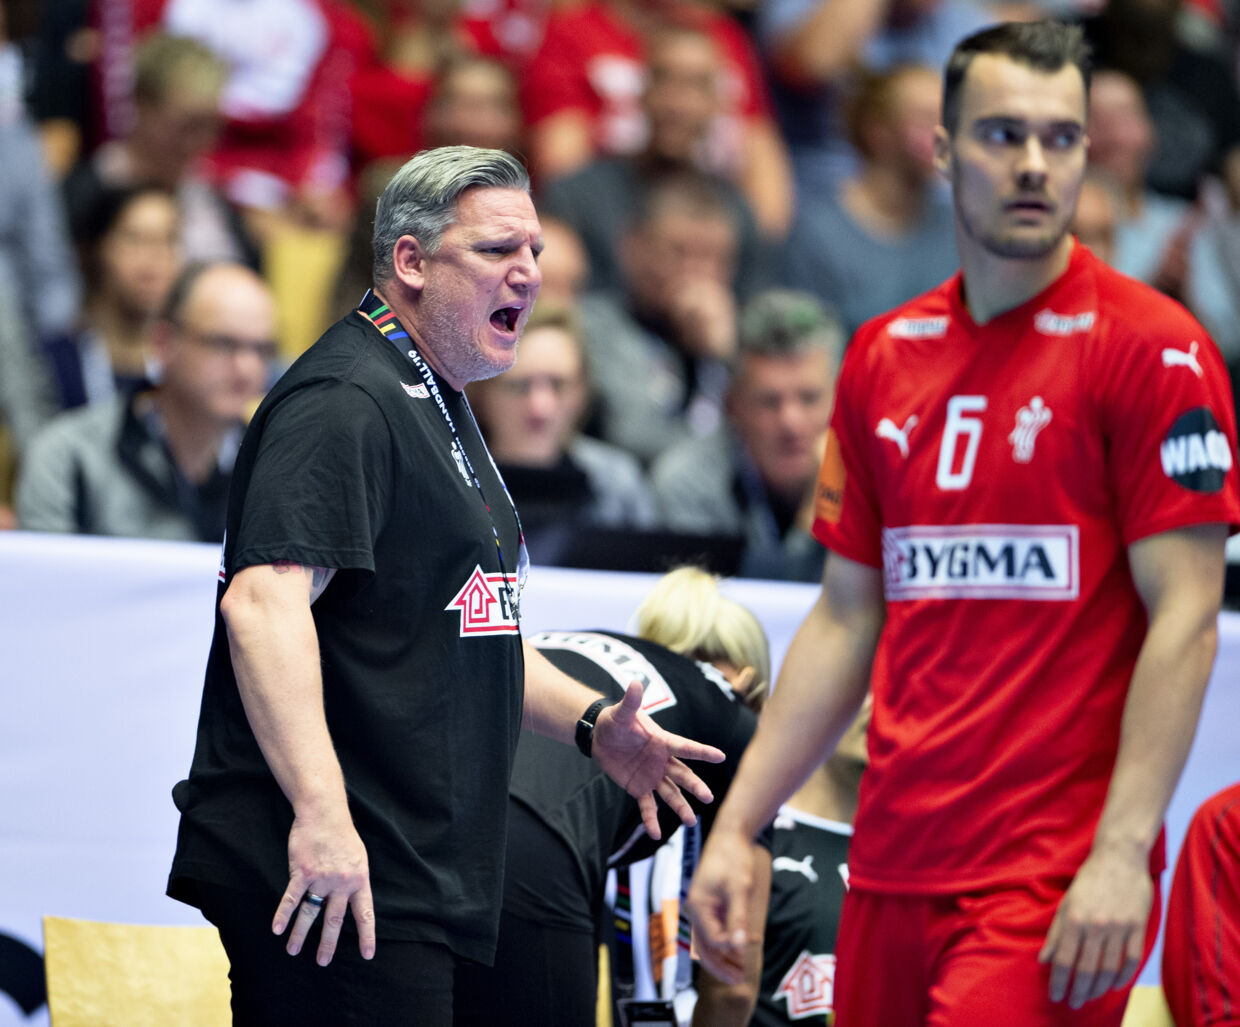 coach Nikolaj Jacobsen of Denmark during the men's IHF Handball World Championship Group C match between Denmark and Tunisia in Herning, Denmark, Saturday, Jan. 12, 2019.. (Foto: Henning Bagger/Ritzau Scanpix)